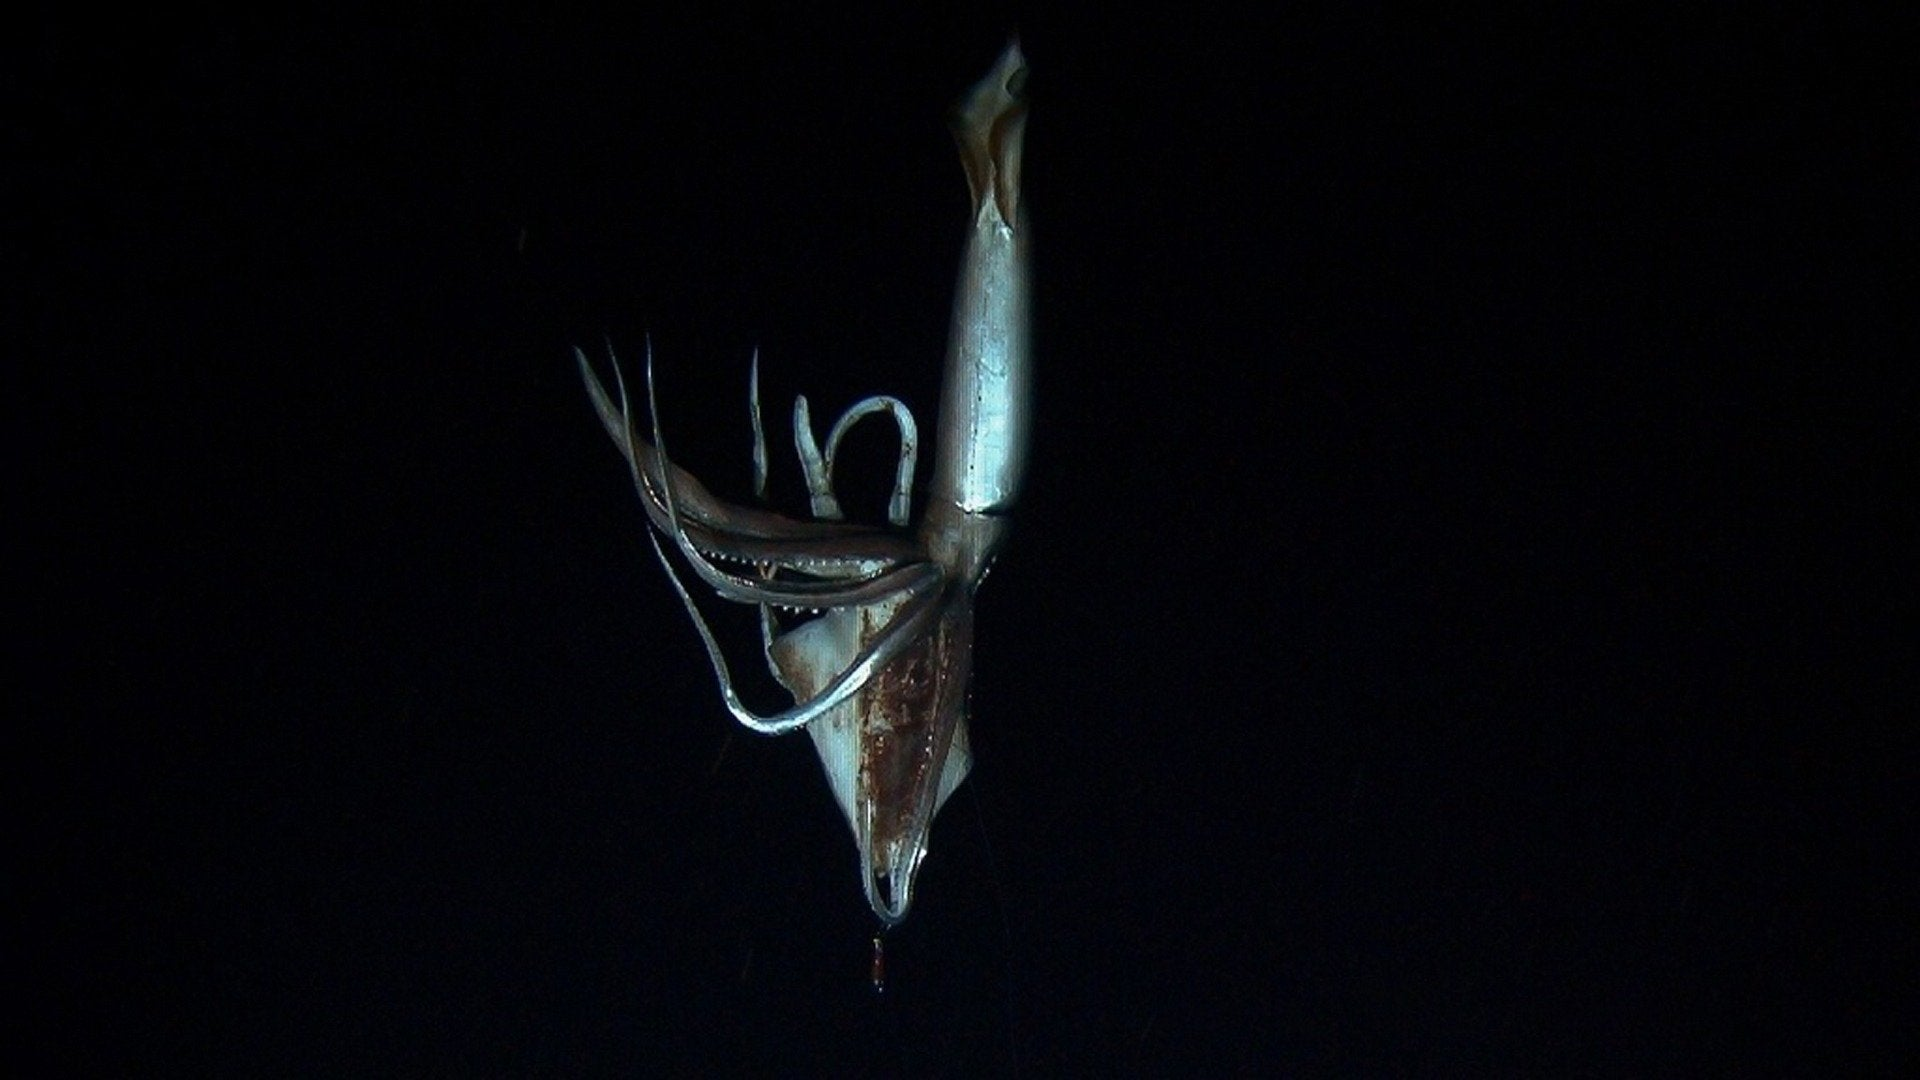 Monster Squid: Hunting a Killer - Finding Squidzilla